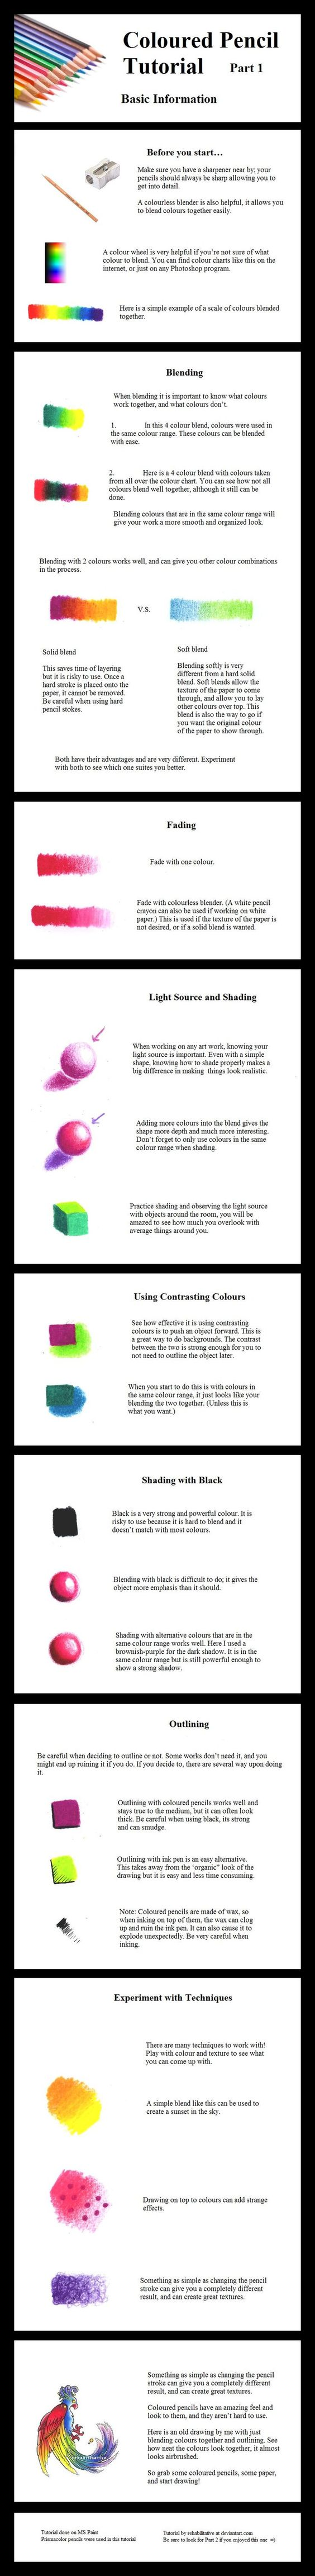 A good video tutorial for different colored pencil techniques. Colored Pencil Techniques color_pencil_techniques_sheet_2012